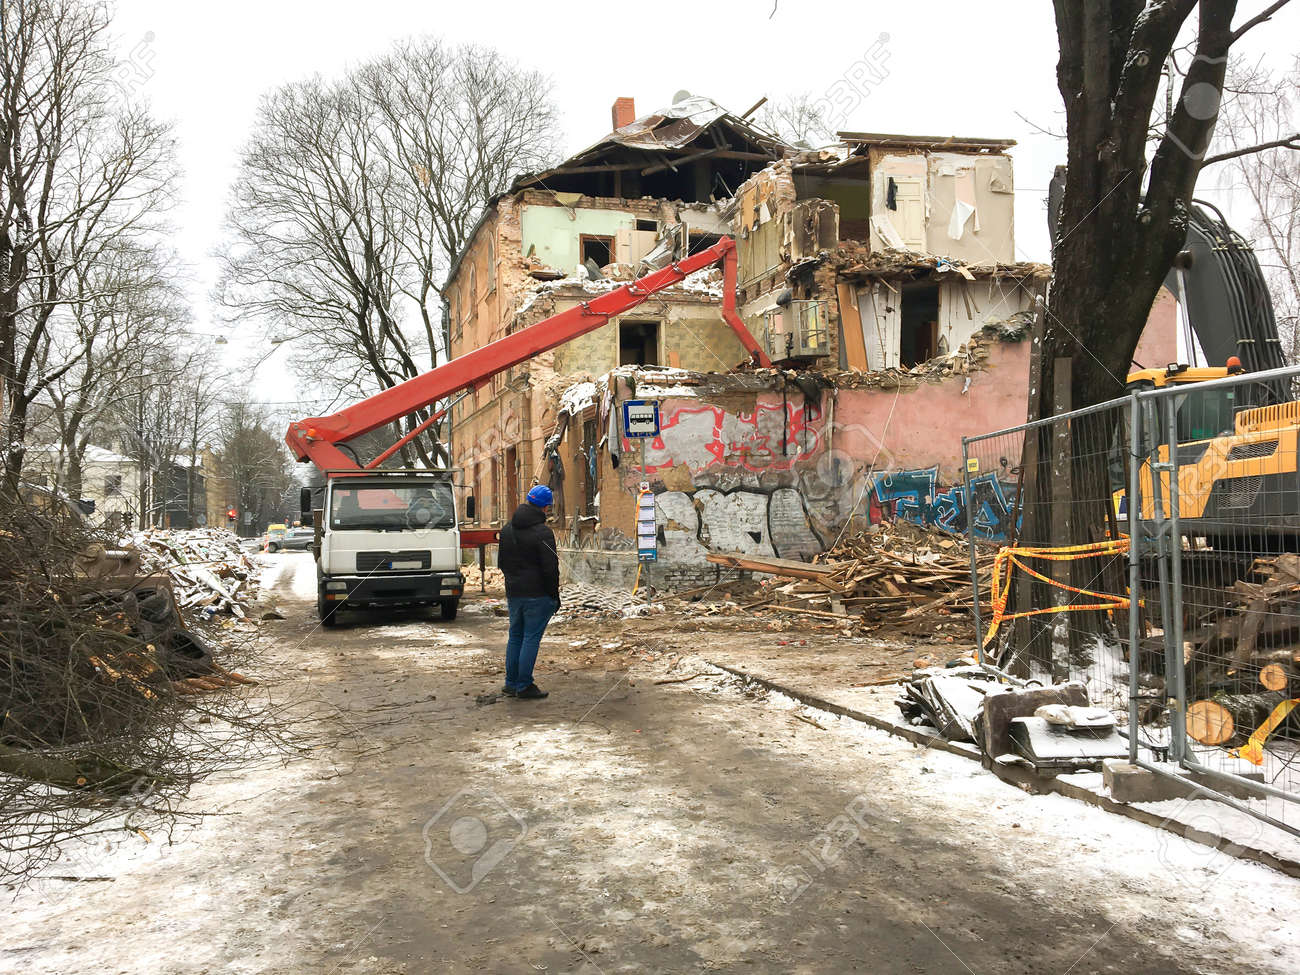 Demolition of an old, dilapidated residential building on a city street - 163526000